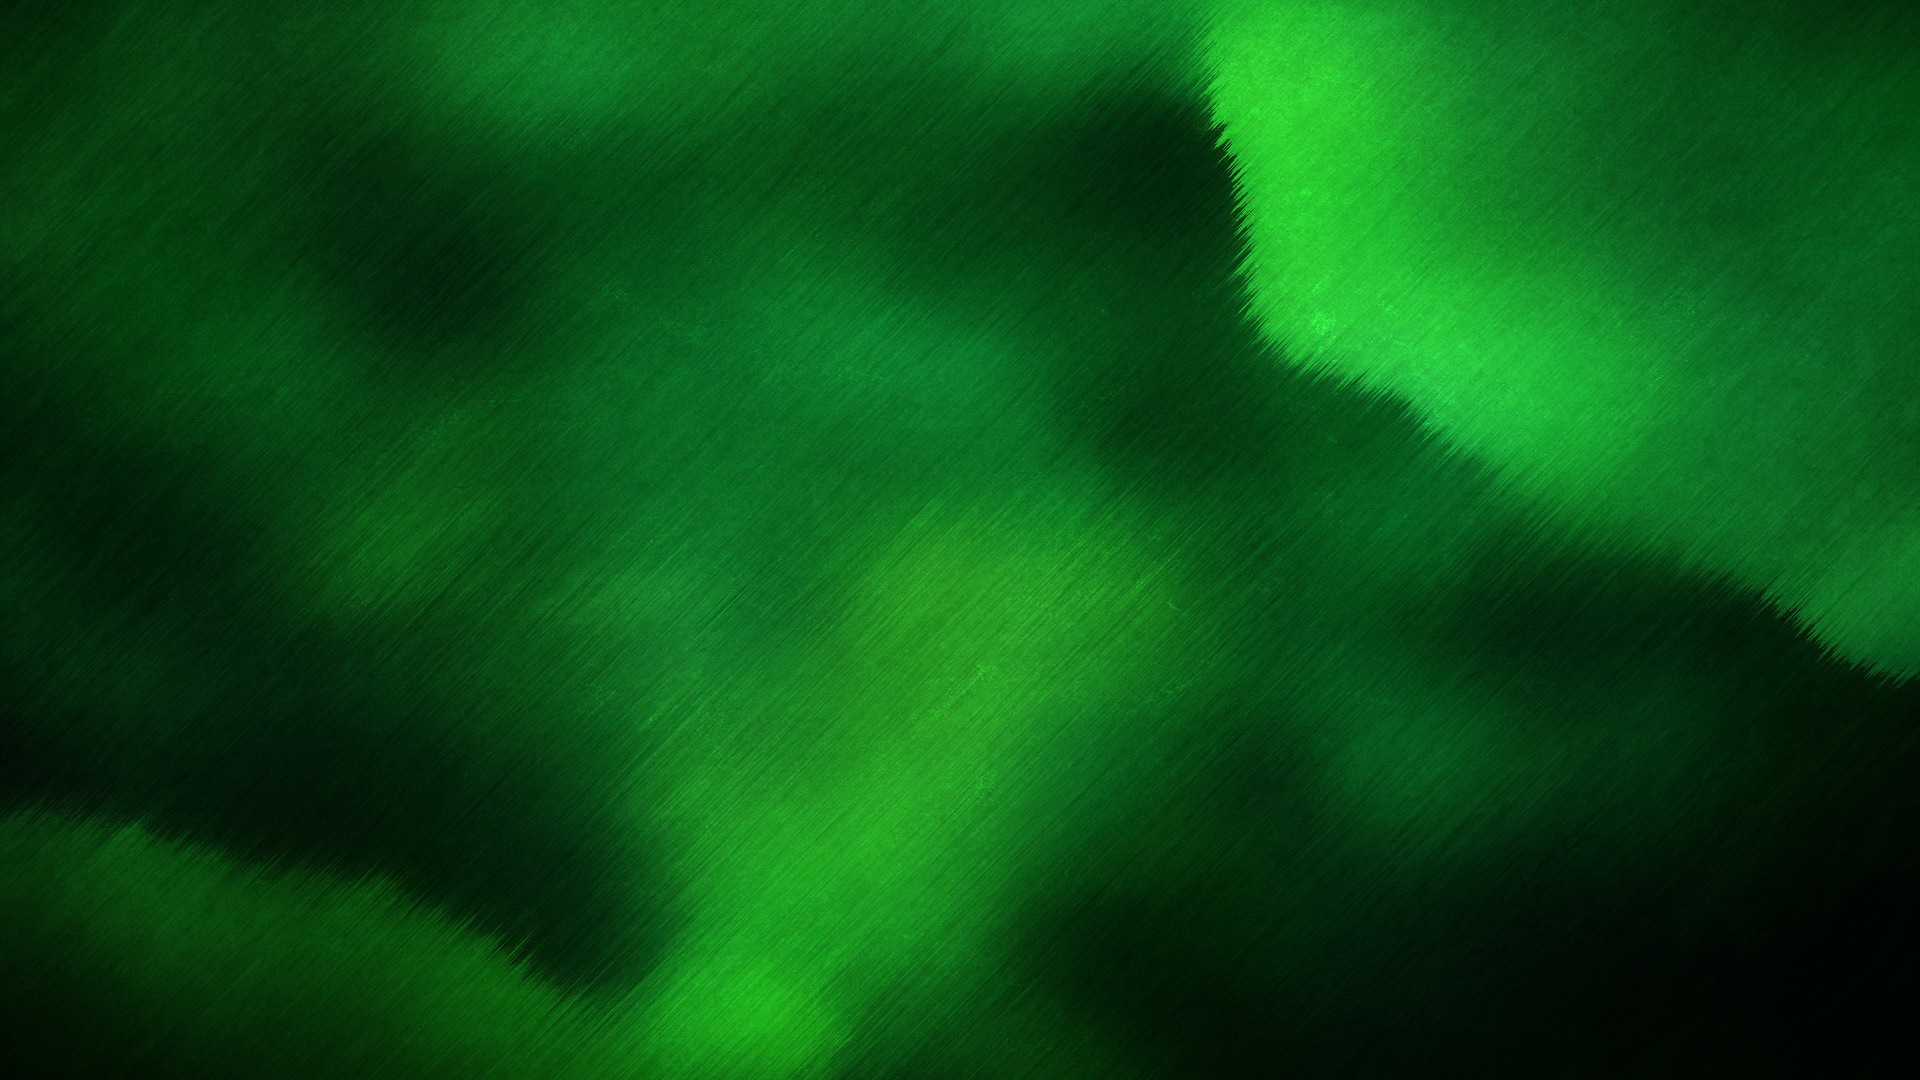 Green with black background wallpapers and images   wallpapers 1920x1080